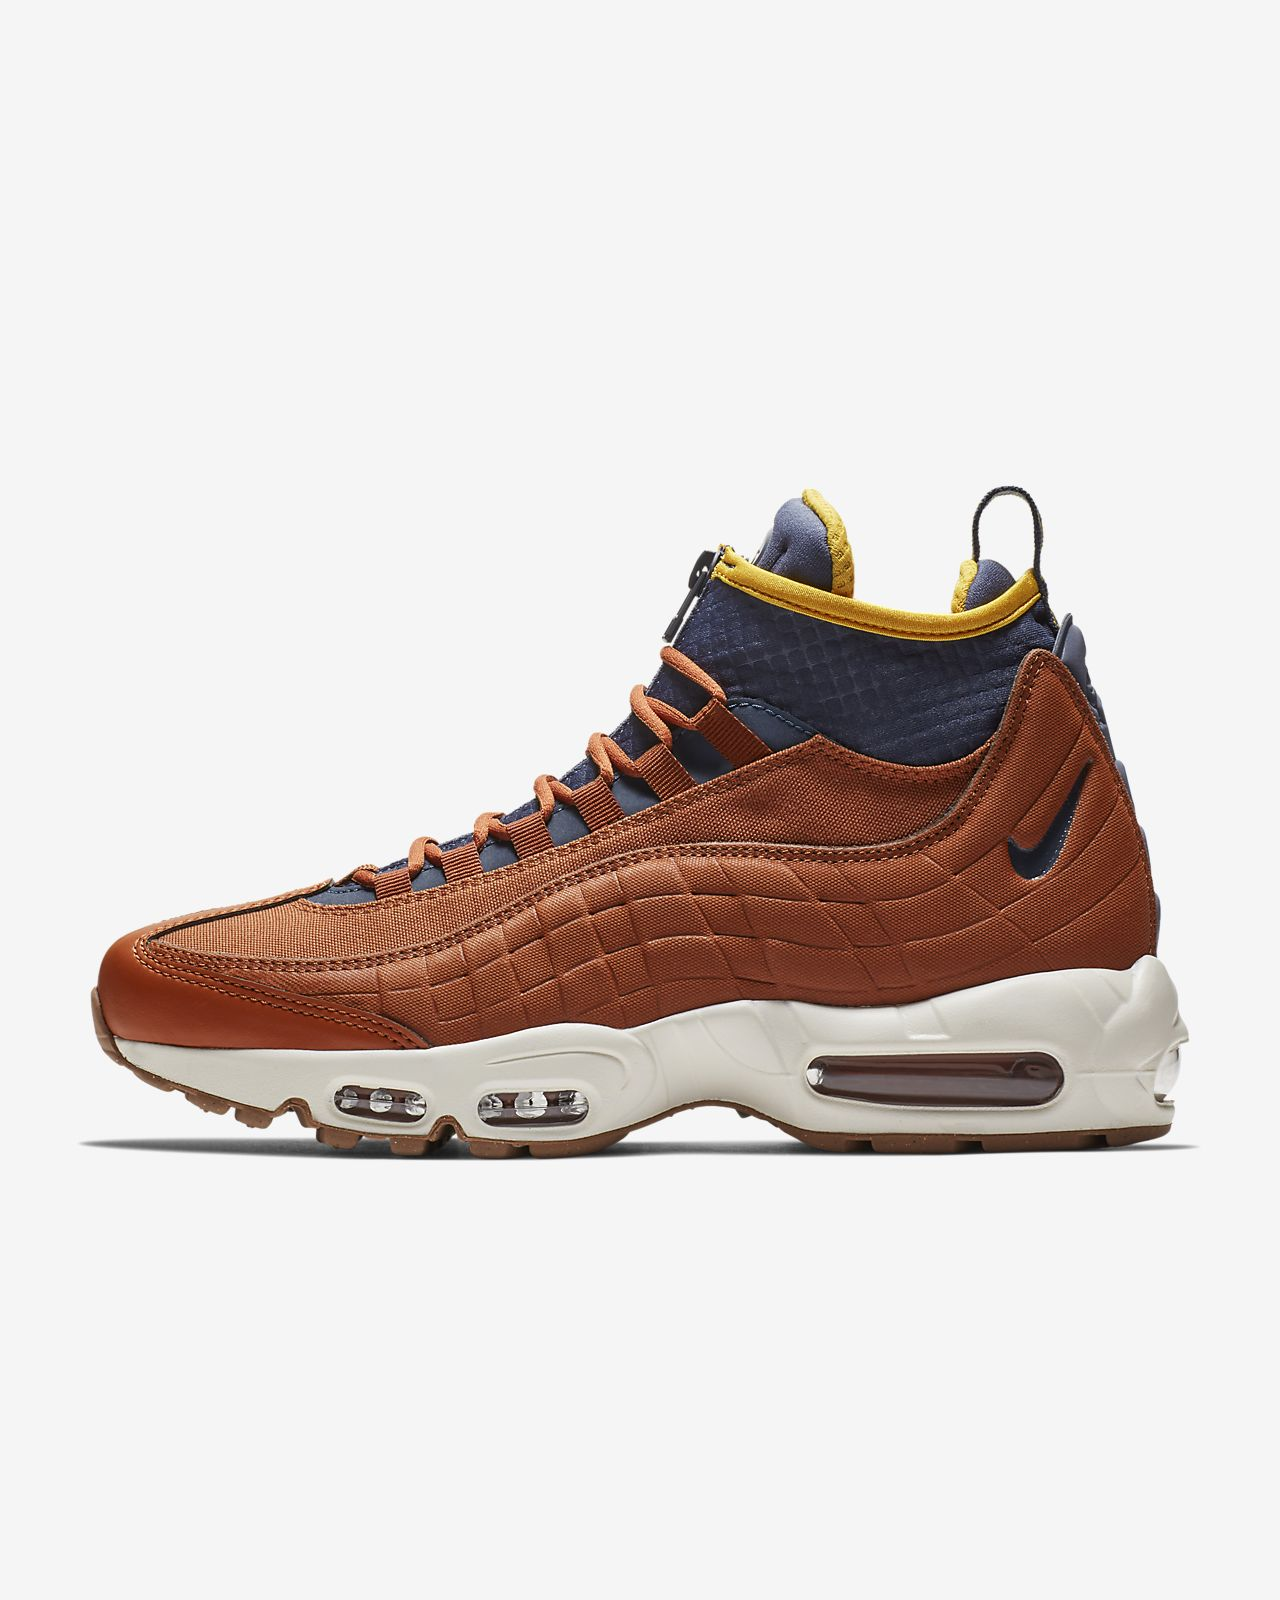 competitive price ee142 25a56 6faf9 d865c  sale nike air max 95 sneakerboot høy sko for herre d2e5c deb68